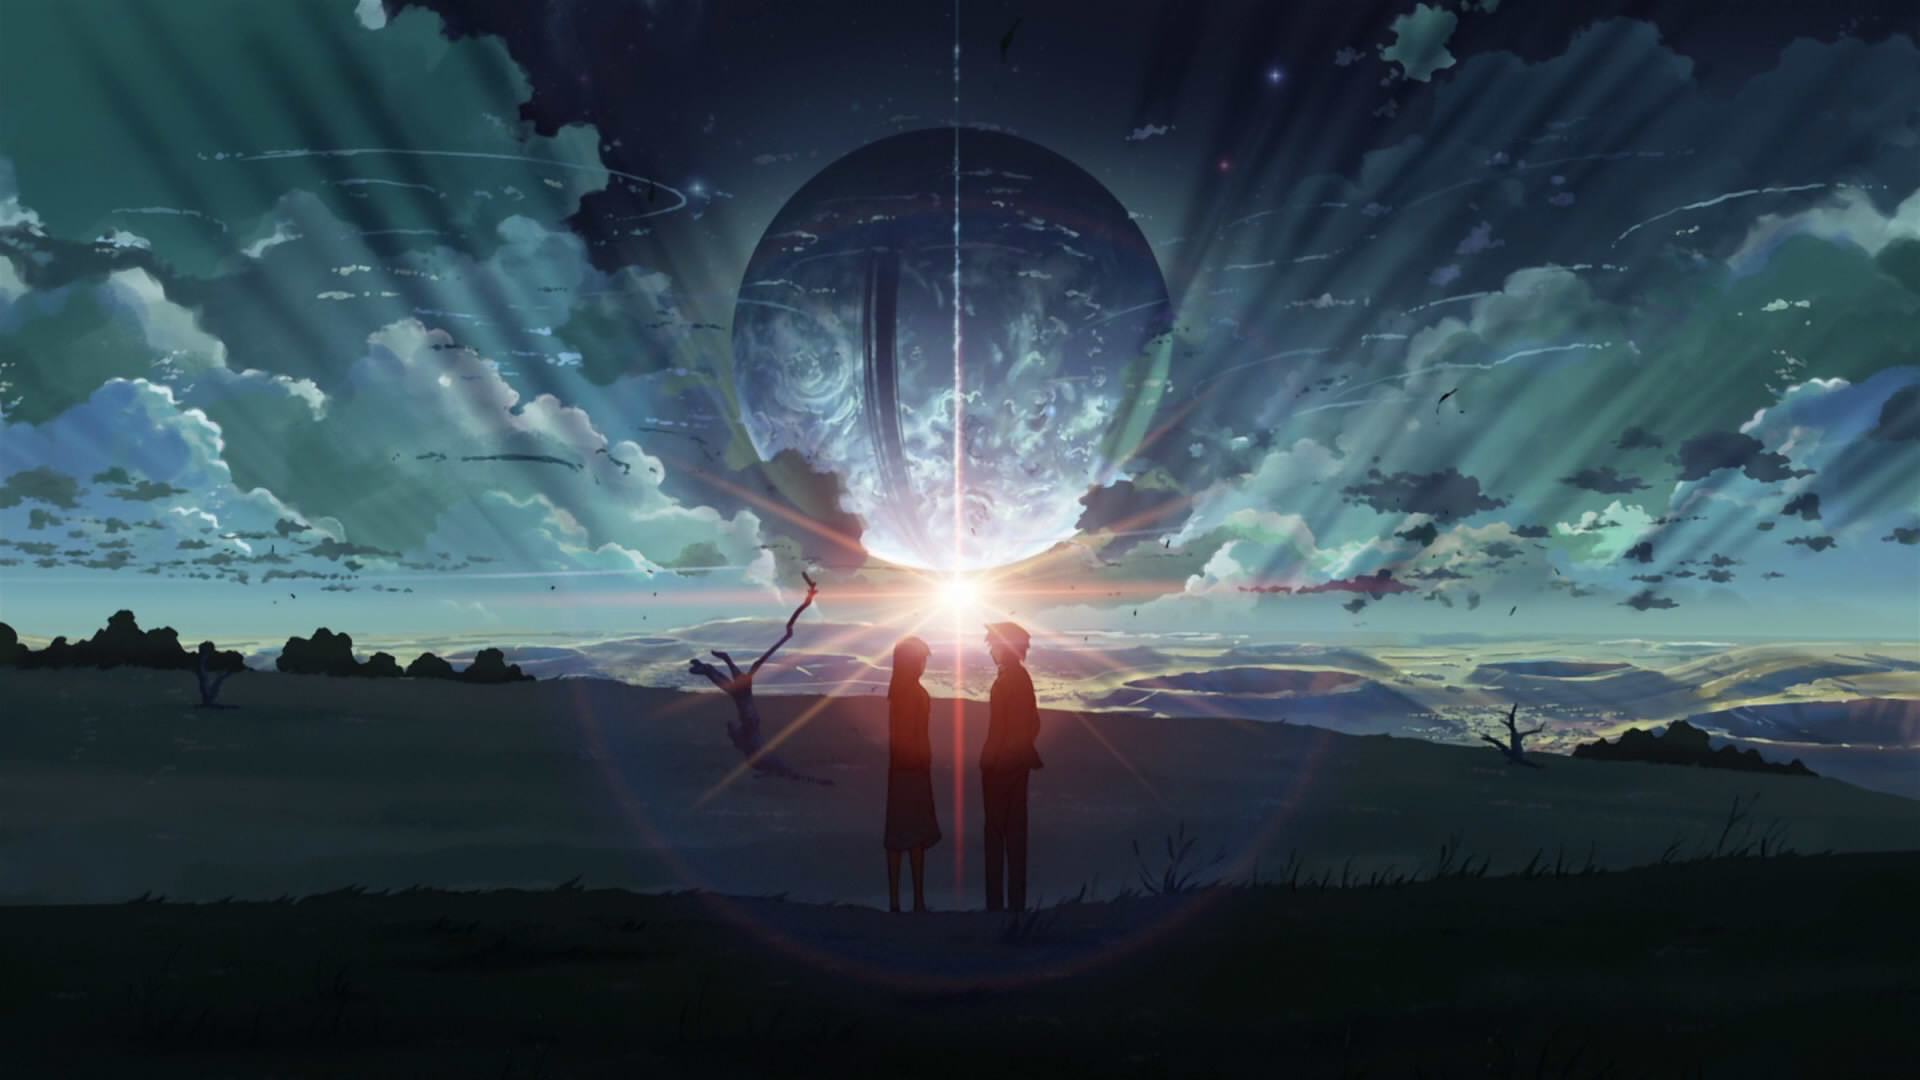 1920x1080 View Fullsize 5 Centimeters Per Second Image